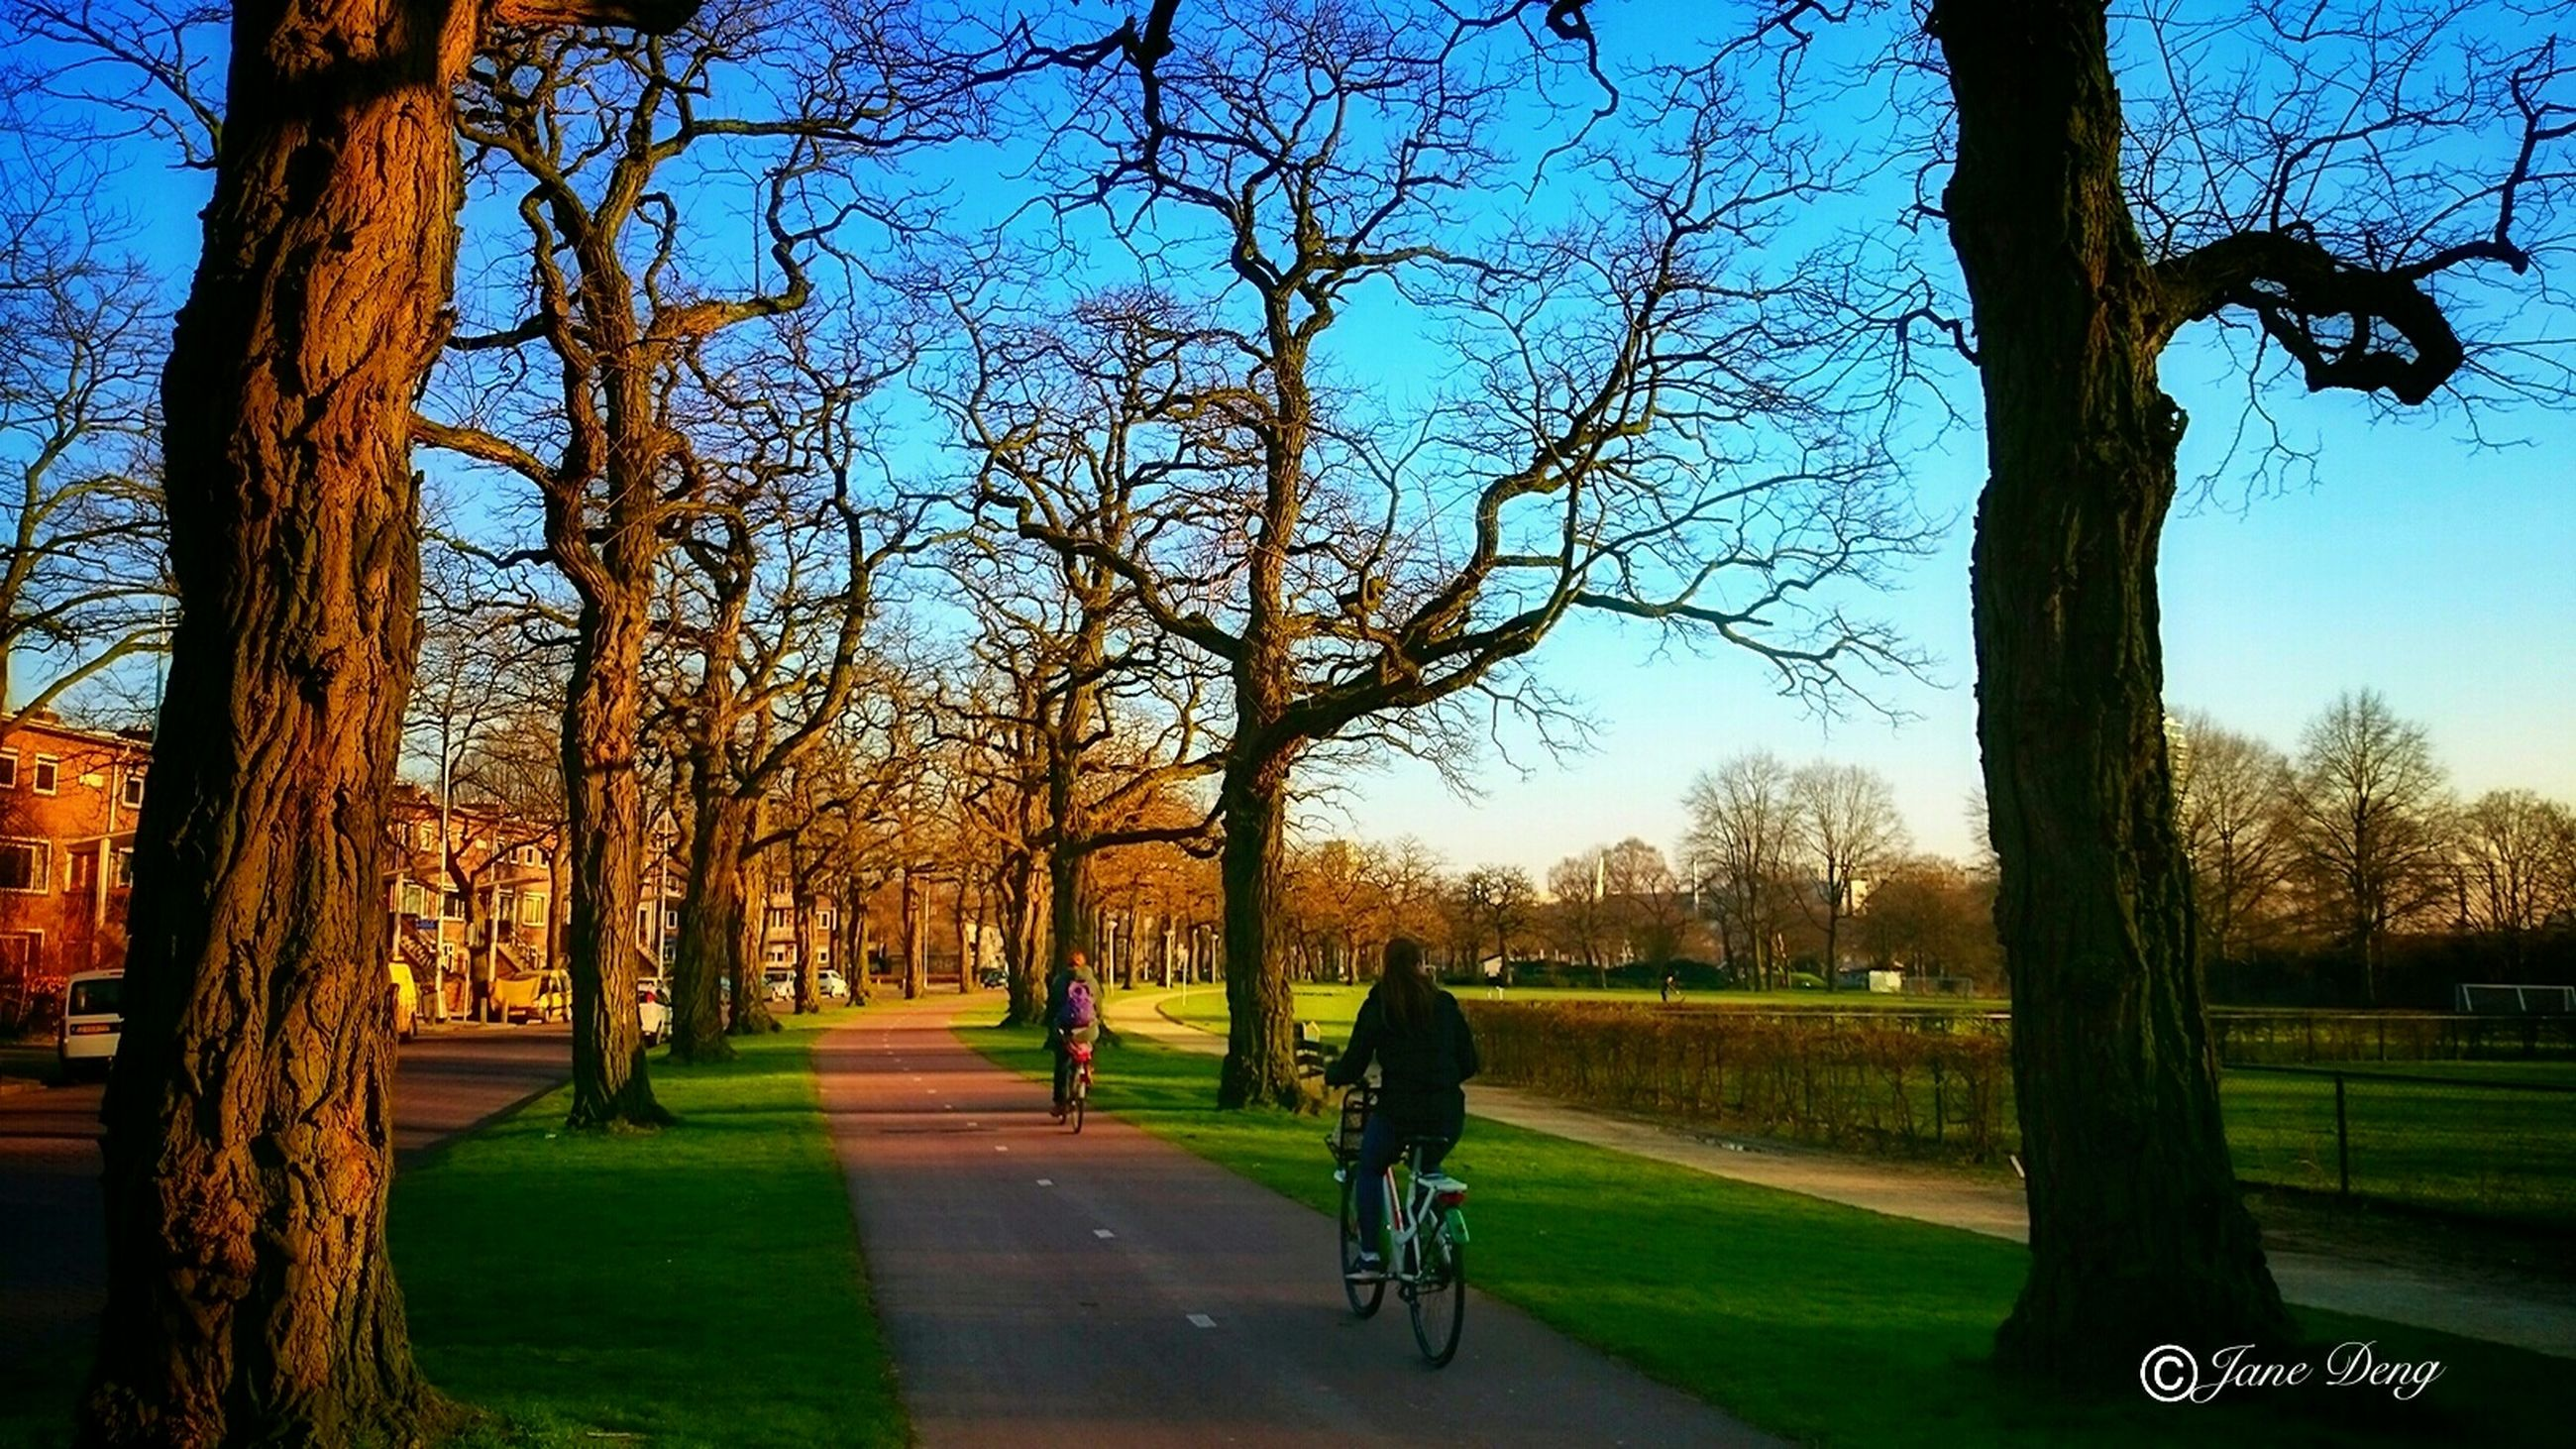 tree, bicycle, transportation, lifestyles, full length, leisure activity, men, grass, land vehicle, riding, road, shadow, walking, sunlight, tree trunk, mode of transport, the way forward, park - man made space